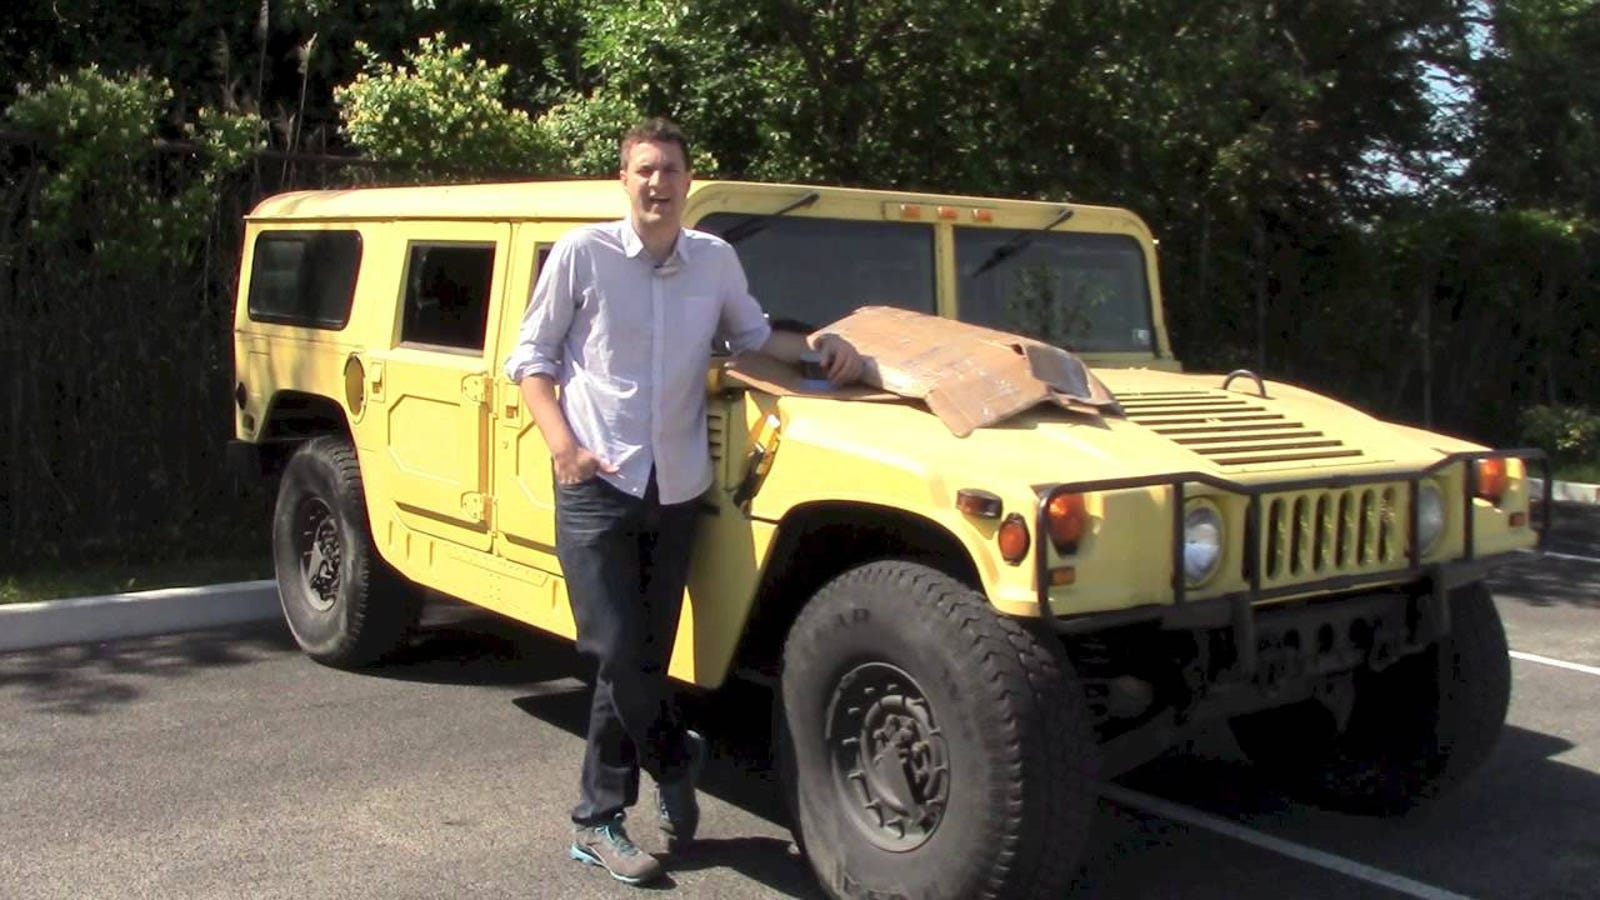 I Hypermiled My Hummer To See What Gas Mileage I Could Get